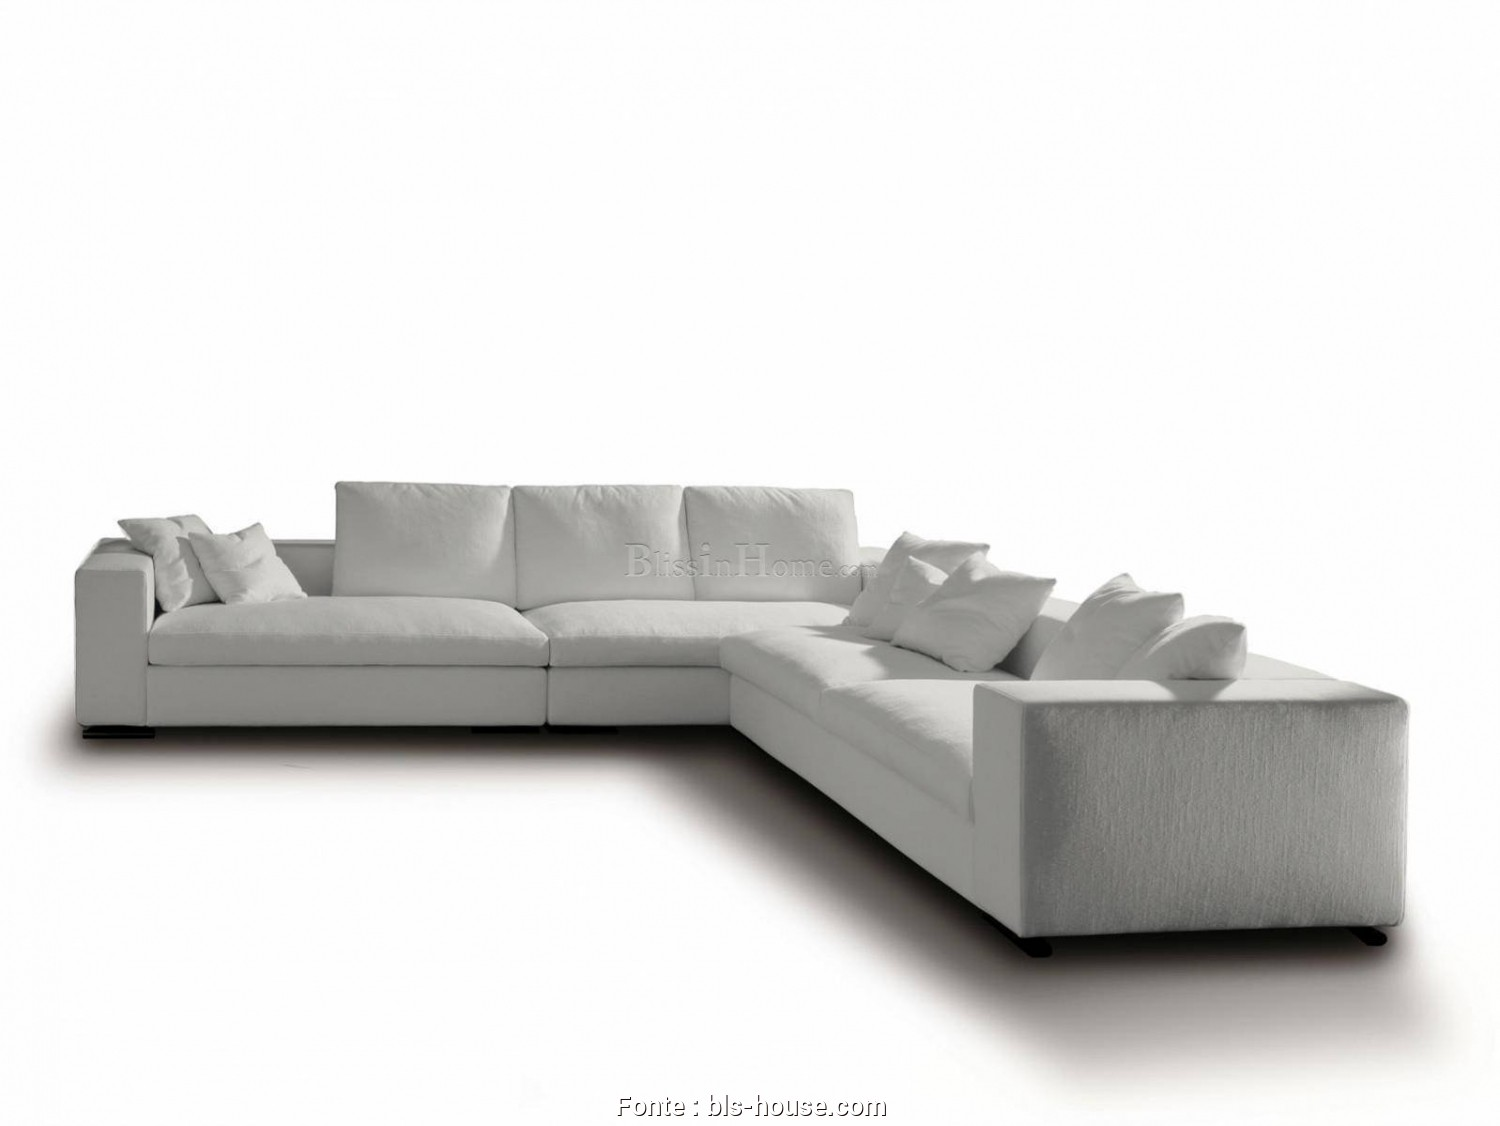 Divano, Chaise Longue Poltrone Sofa, Migliore Buy Cheaper Divani E Poltrone Sofa, Soft, Soft-4 7, From